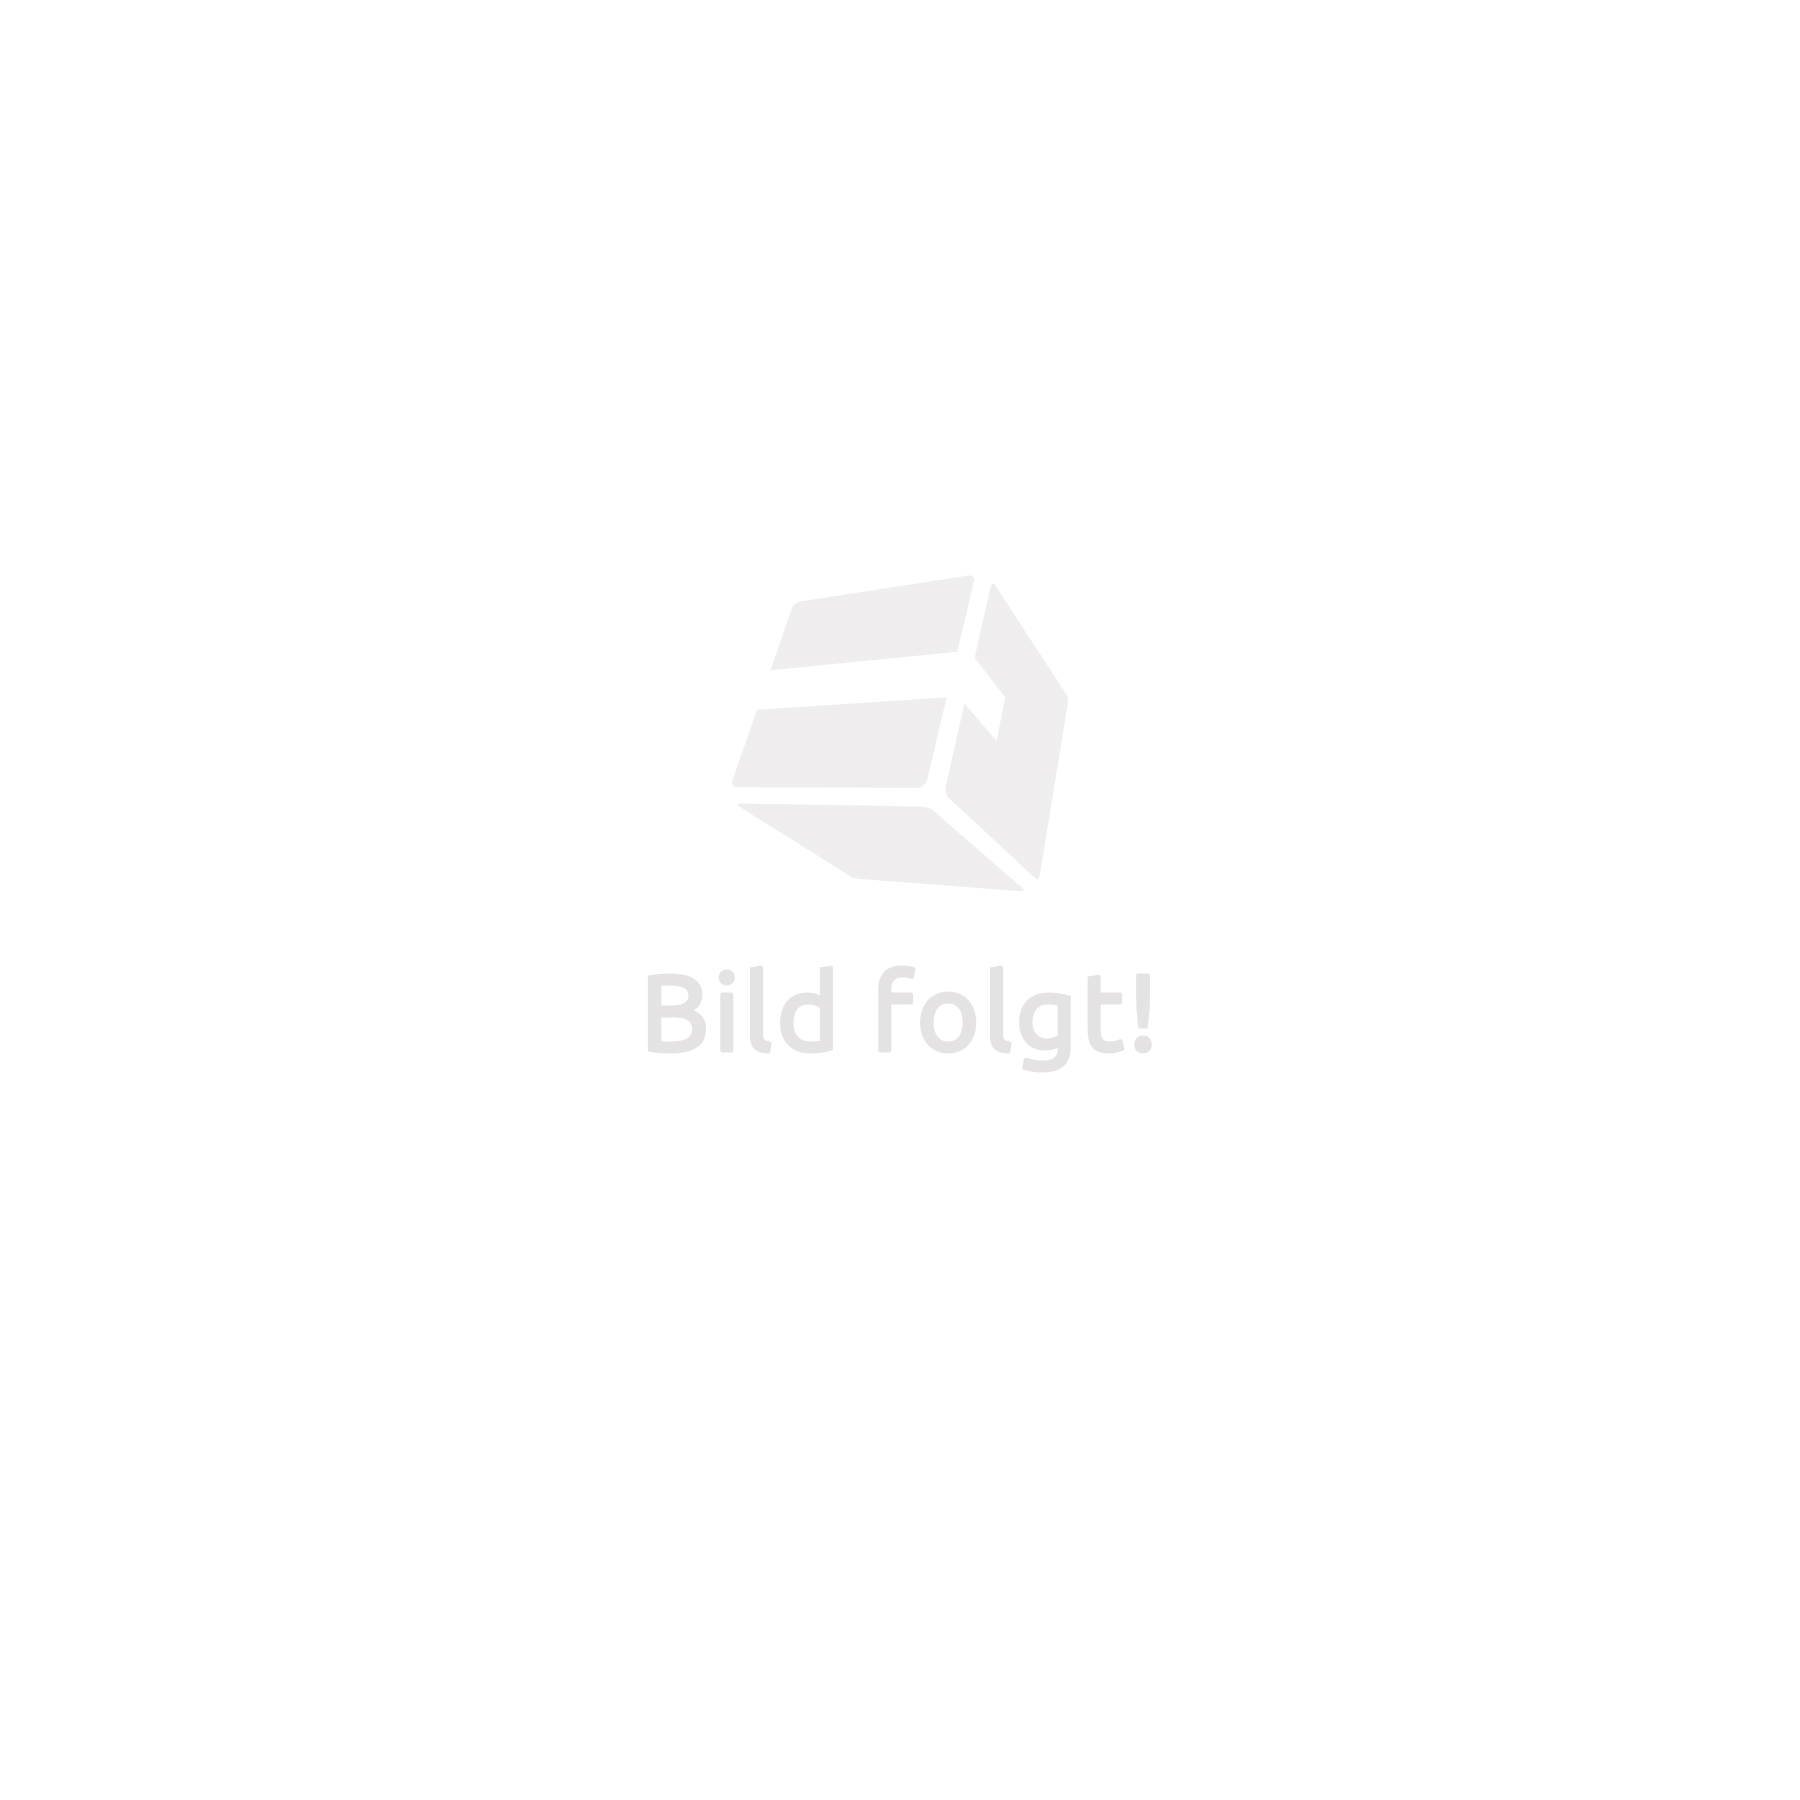 table de camping pique nique ajustable en hauteur pliante en gris tectake. Black Bedroom Furniture Sets. Home Design Ideas